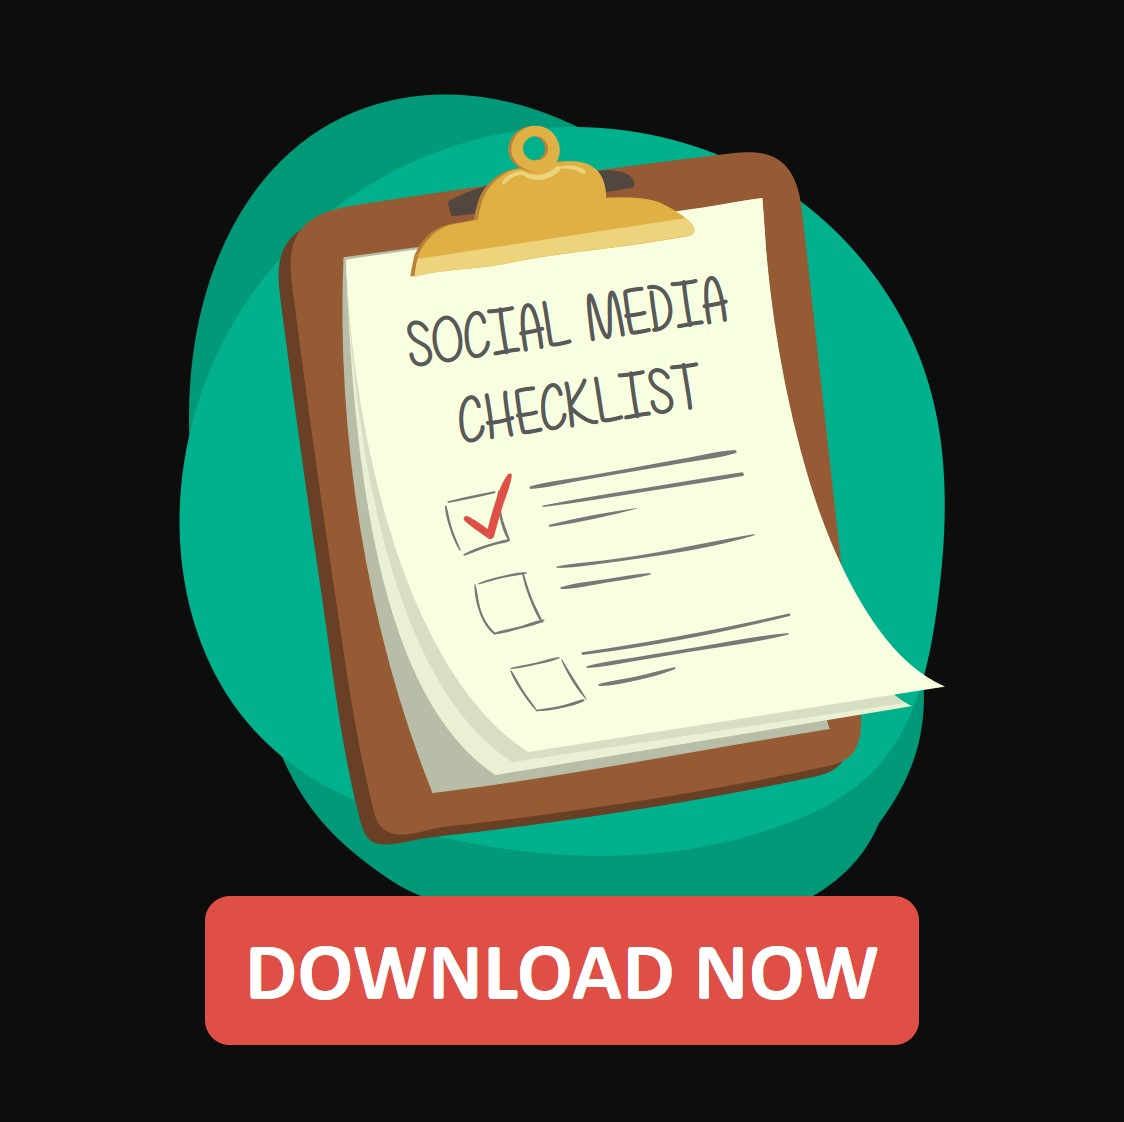 dOWNLOAD YOUR SOCIAL MEDIA MARKETING CHECKLIST